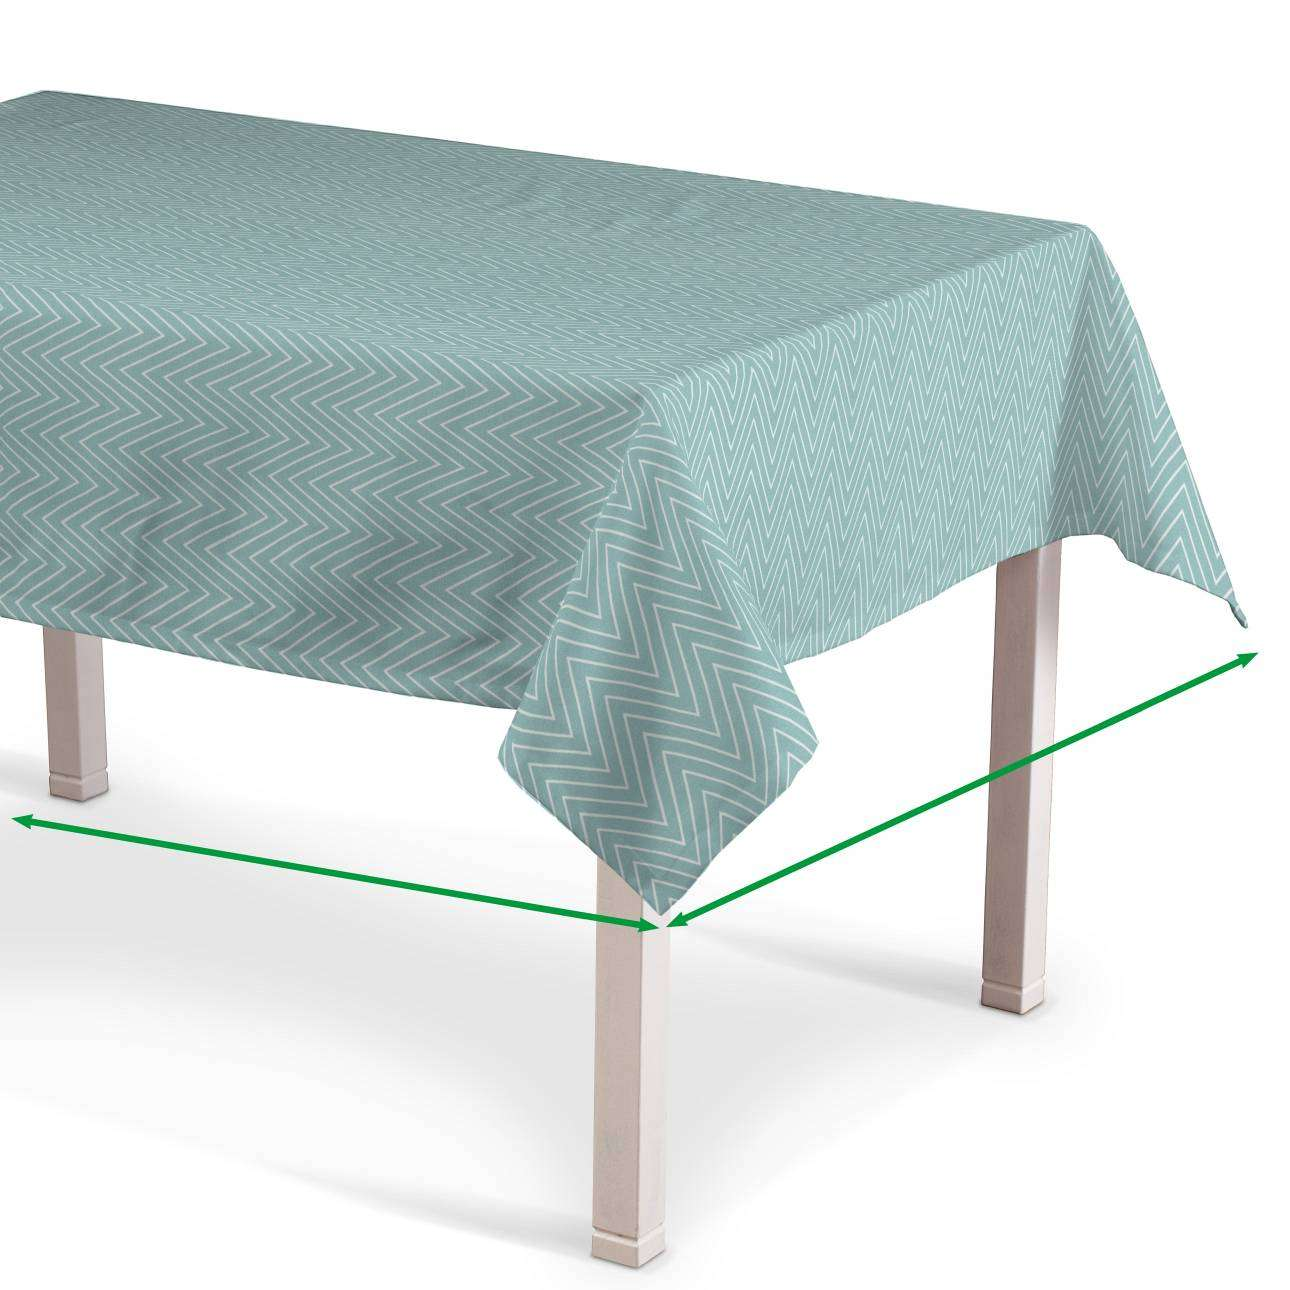 Rectangular tablecloth in collection Brooklyn, fabric: 137-90